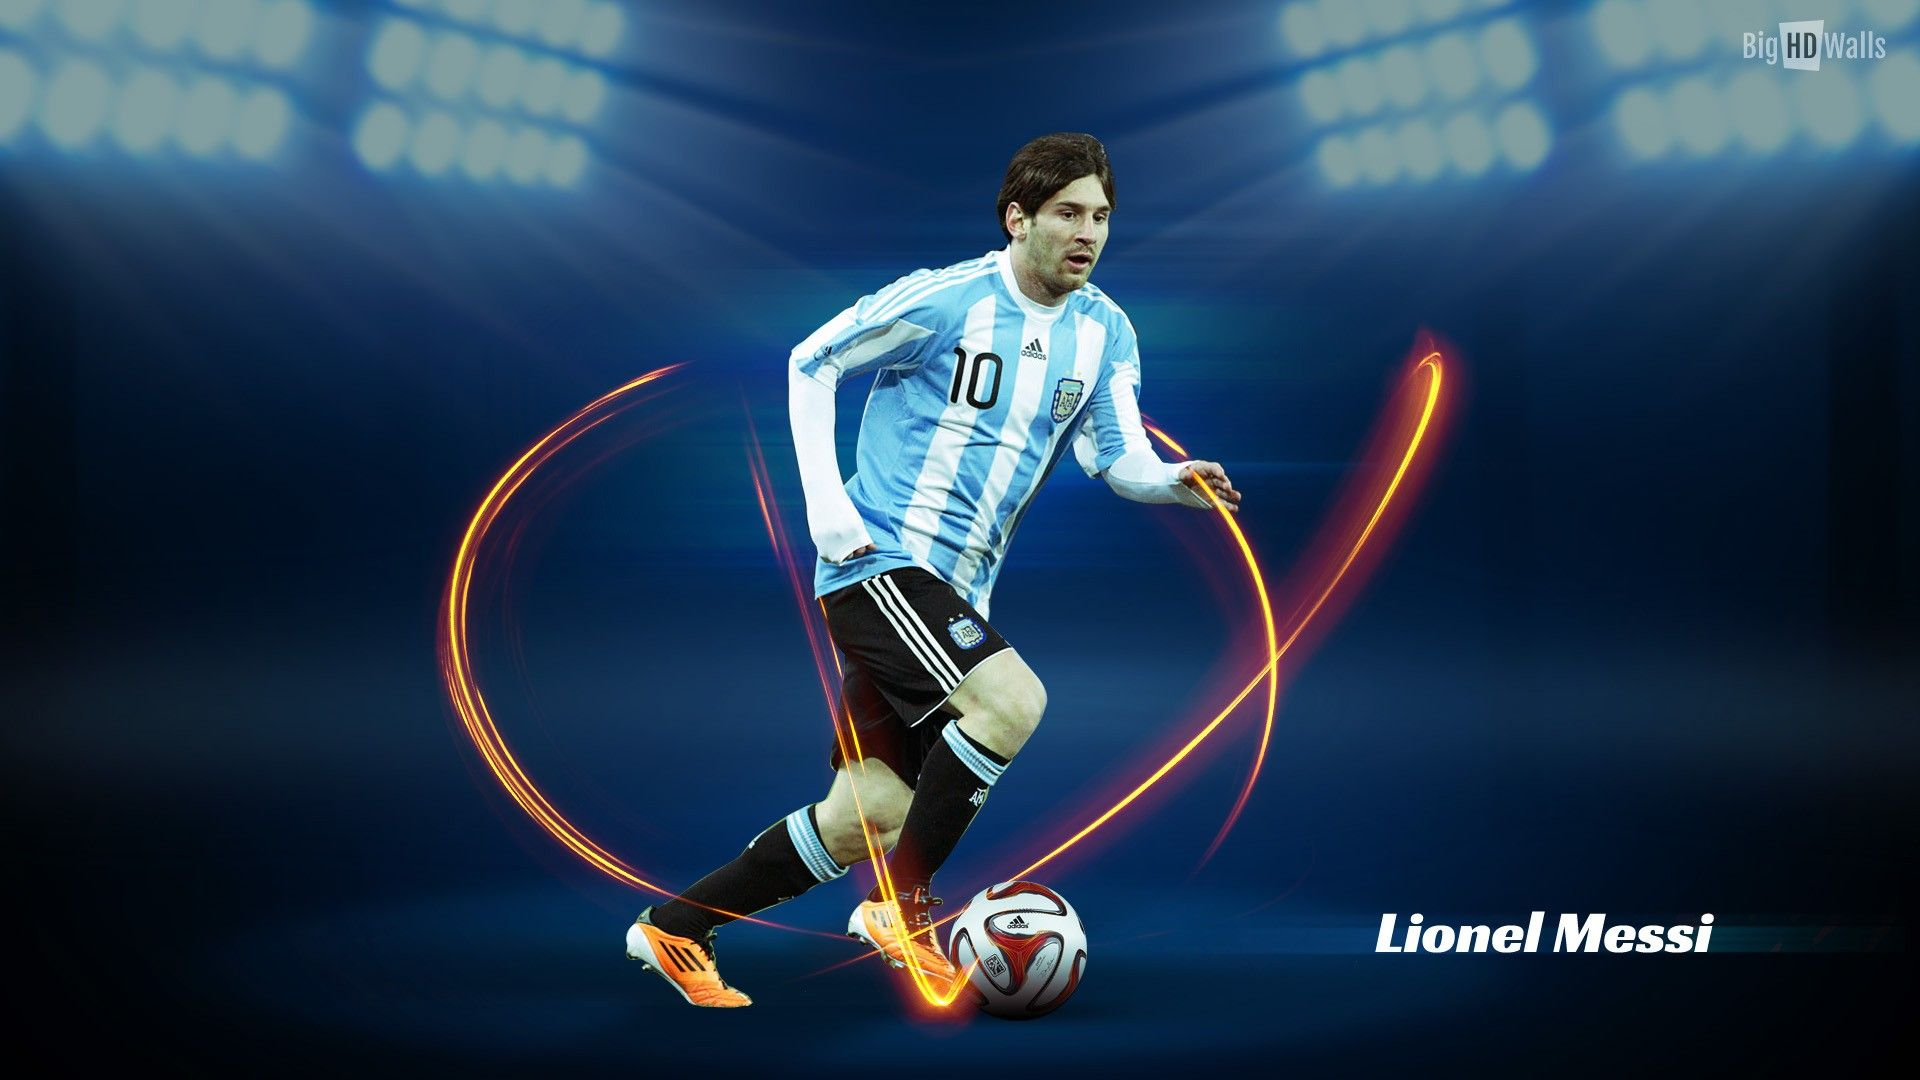 Lionel Messi Argentina HD Wallpaper HD Background Wallpapers Free